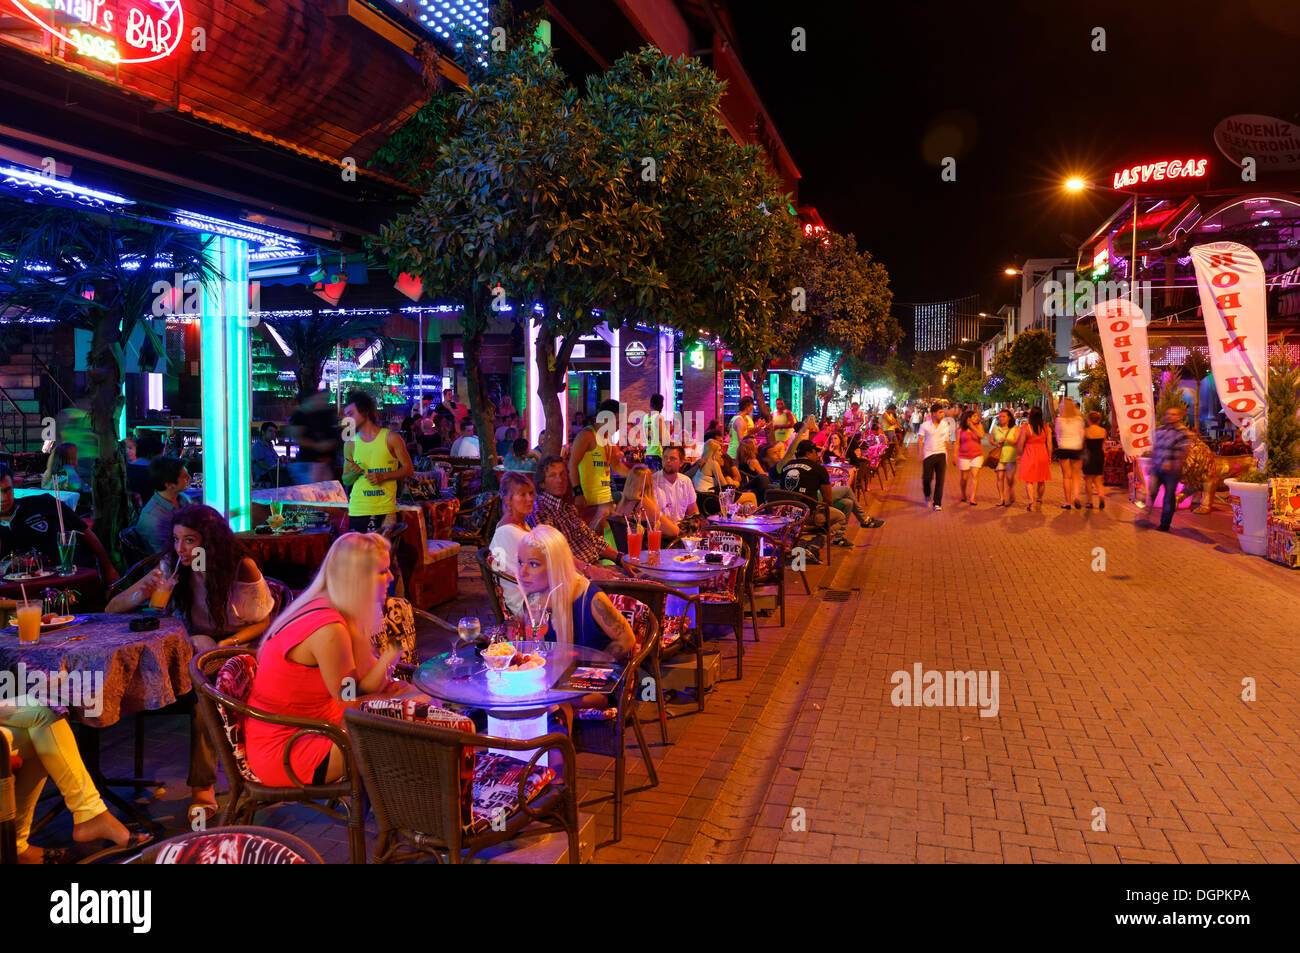 Bars in the town centre at night, Alanya, Turkish Riviera, Province of Antalya, Mediterranean Region, Turkey - Stock Image